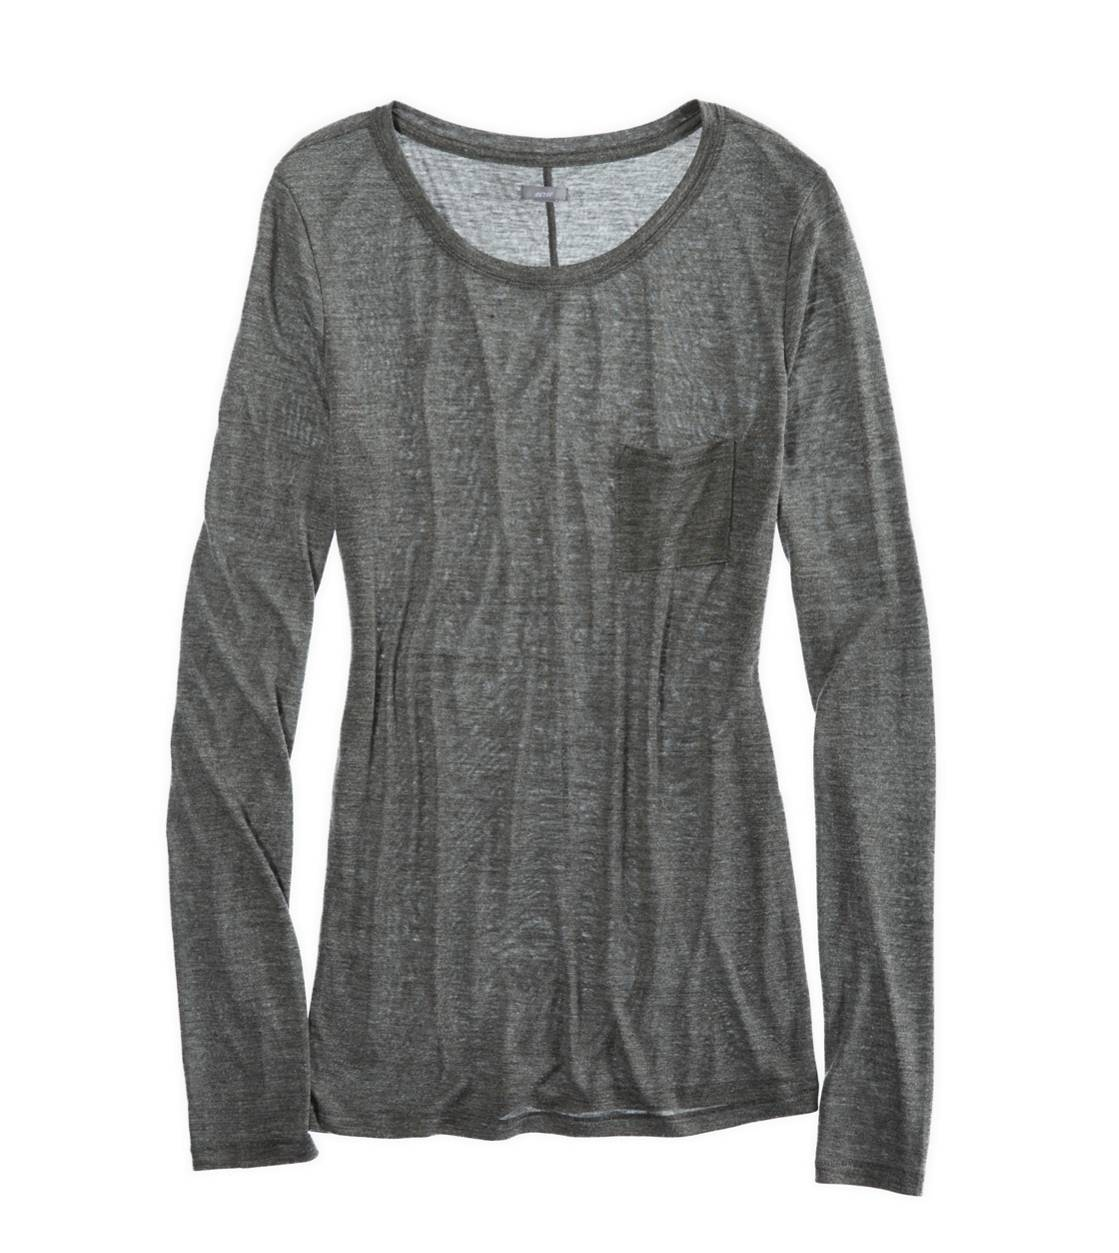 Gravel Aerie Comfiest Pocket T-Shirt